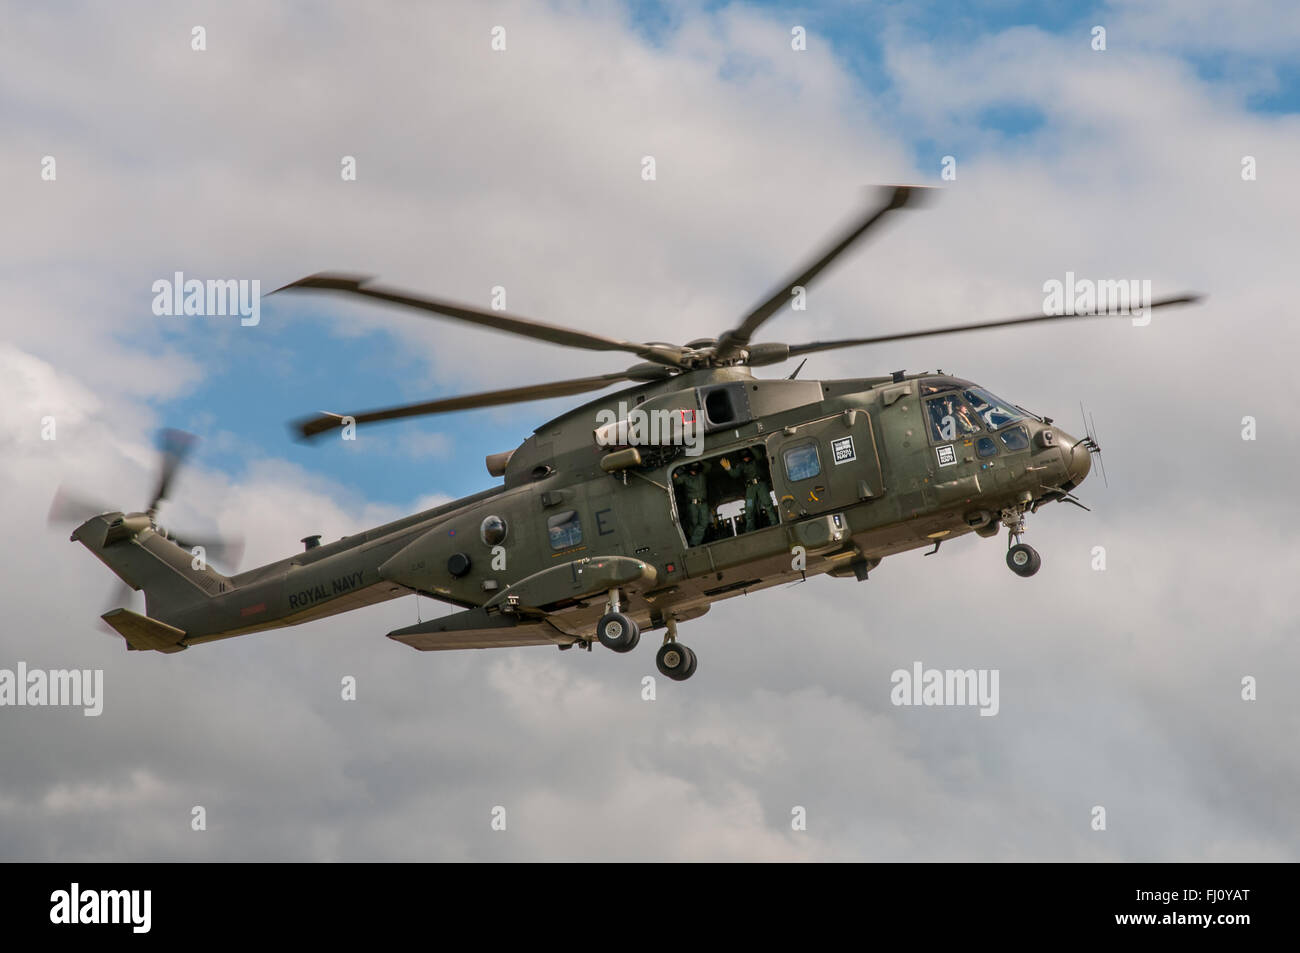 Agusta Westland Merlin HC.3 Helicopter of the British Royal Navy. - Stock Image